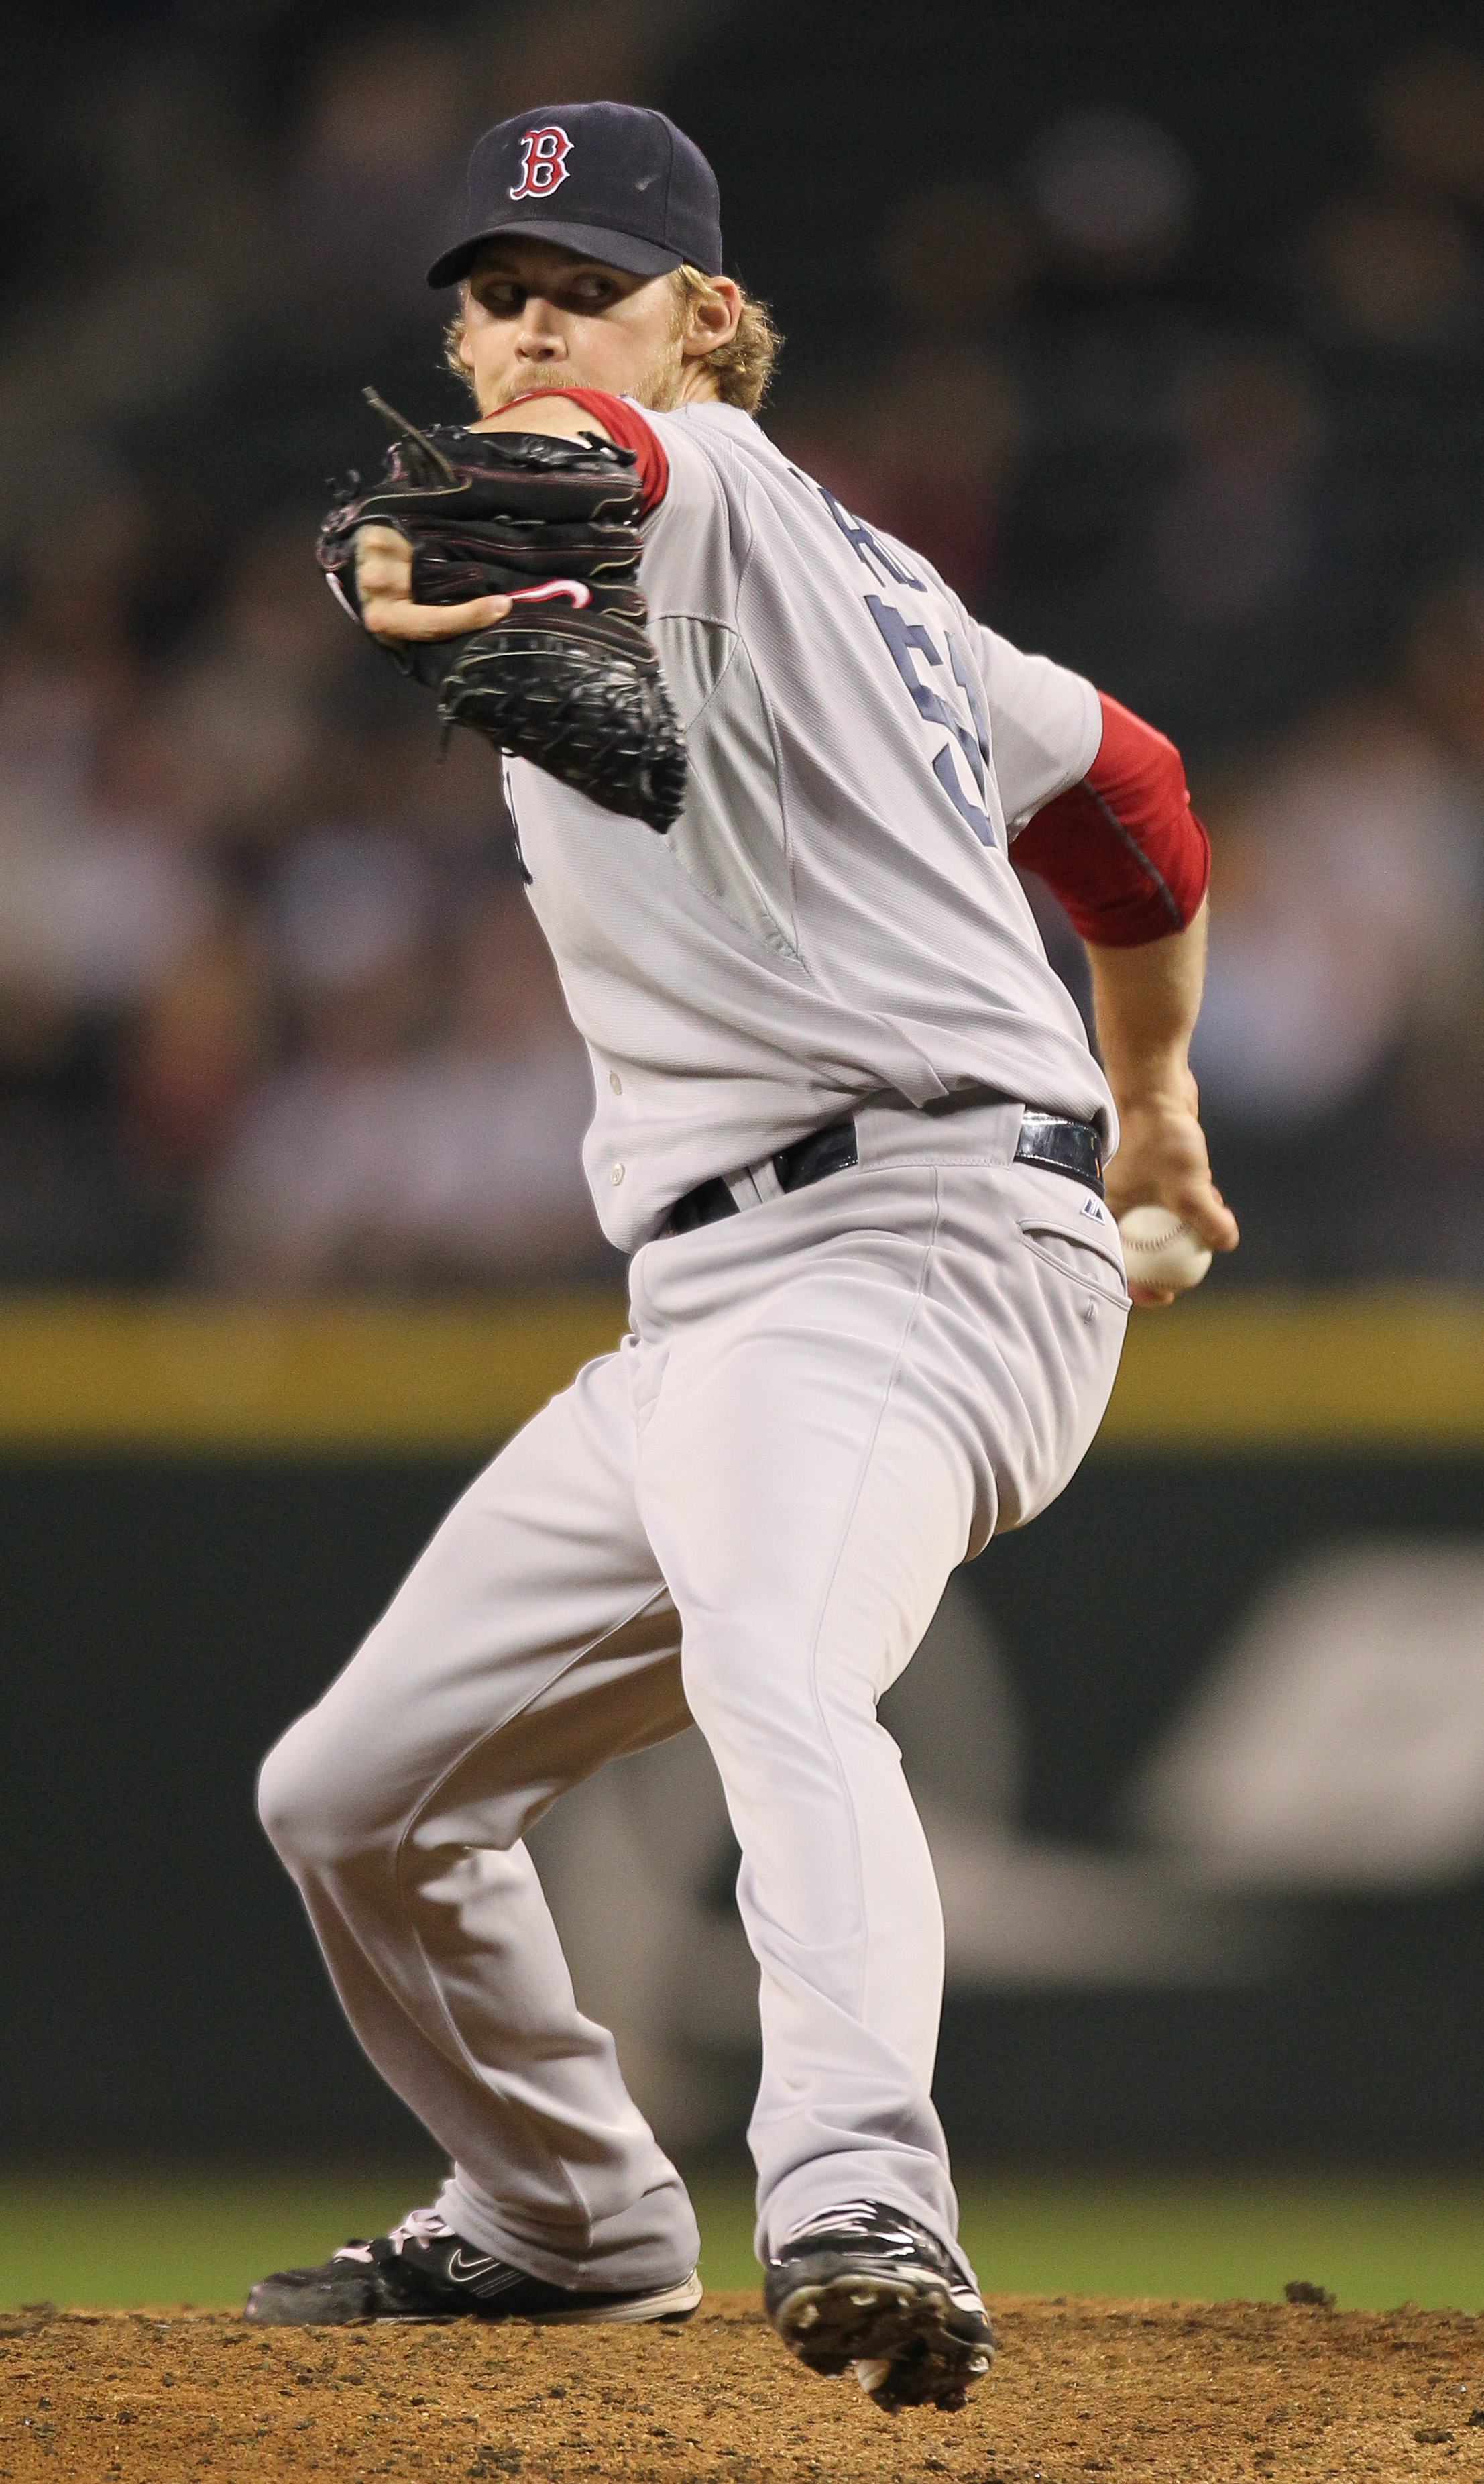 SEATTLE - SEPTEMBER 13:  Daniel Bard #51 of the Boston Red Sox pitches against the Seattle Mariners at Safeco Field on September 13, 2010 in Seattle, Washington. (Photo by Otto Greule Jr/Getty Images)